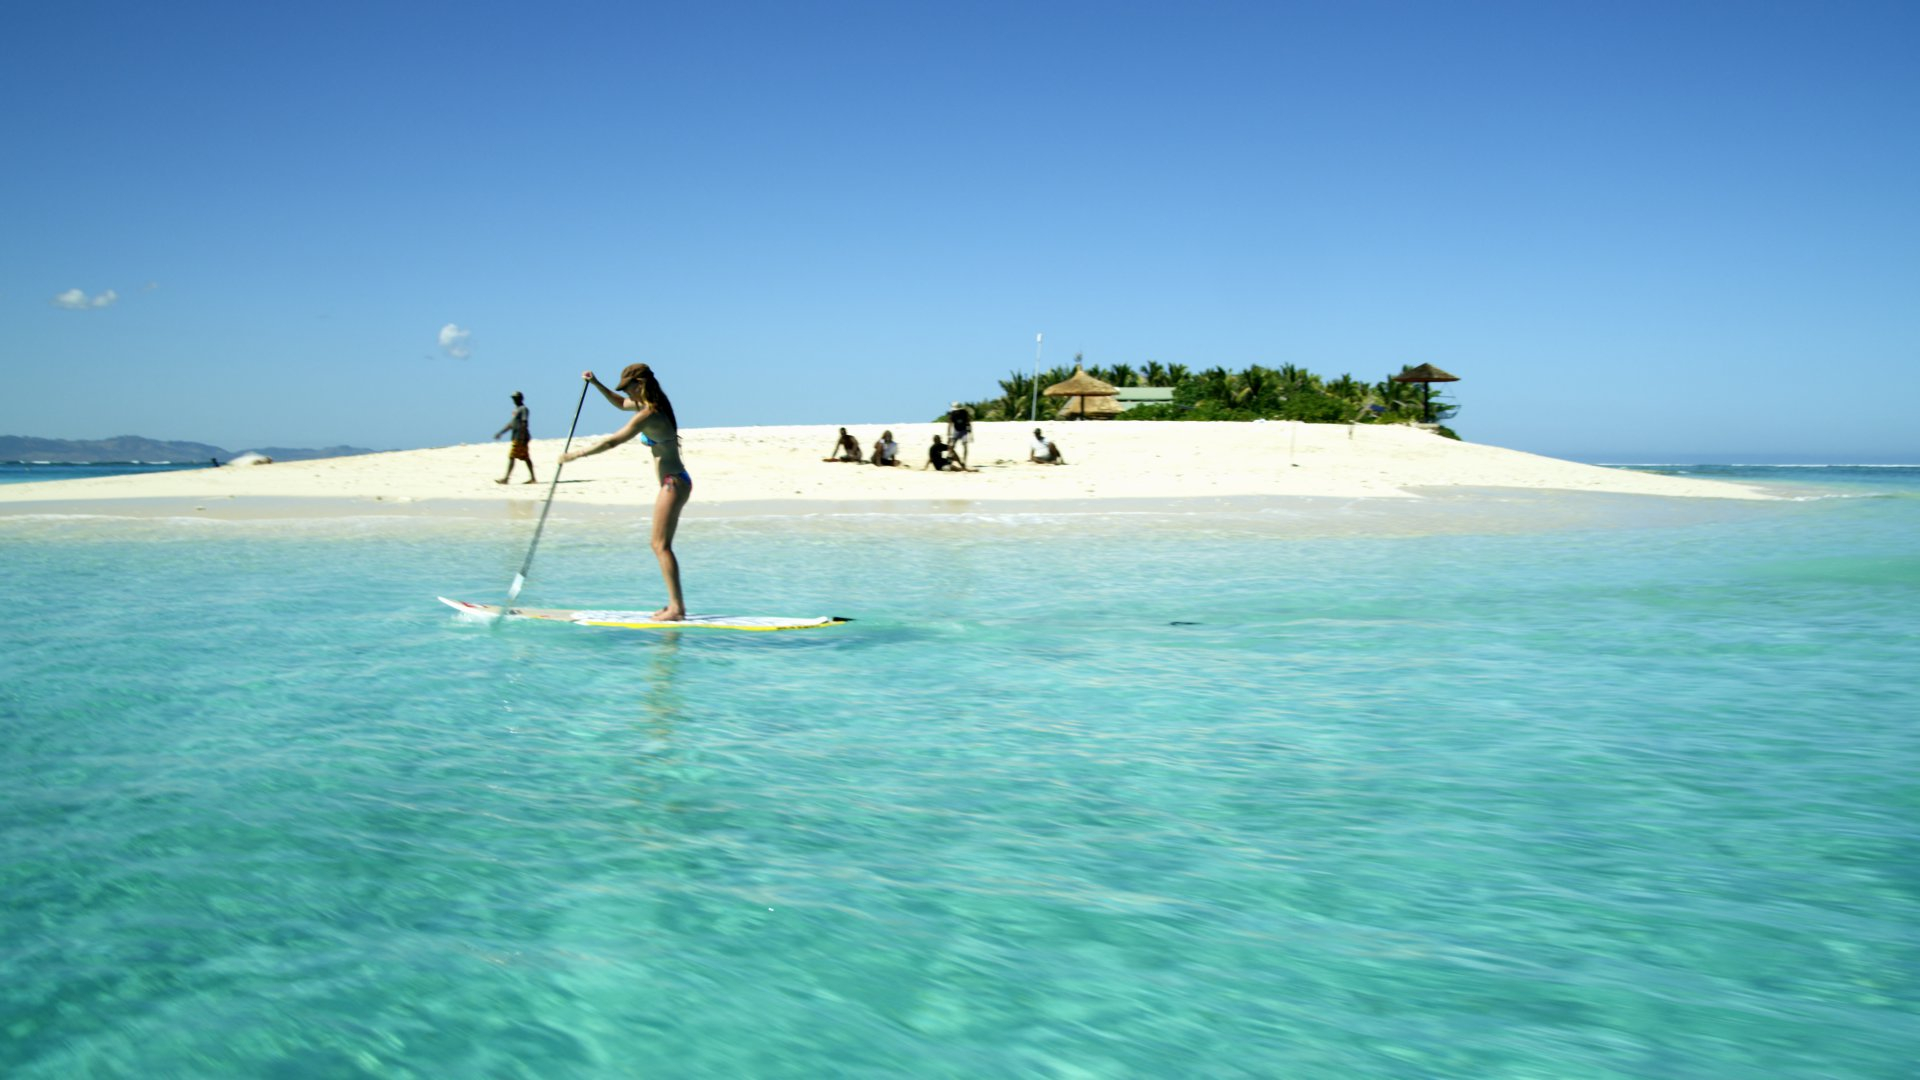 sup surfing wallpaper - photo #3